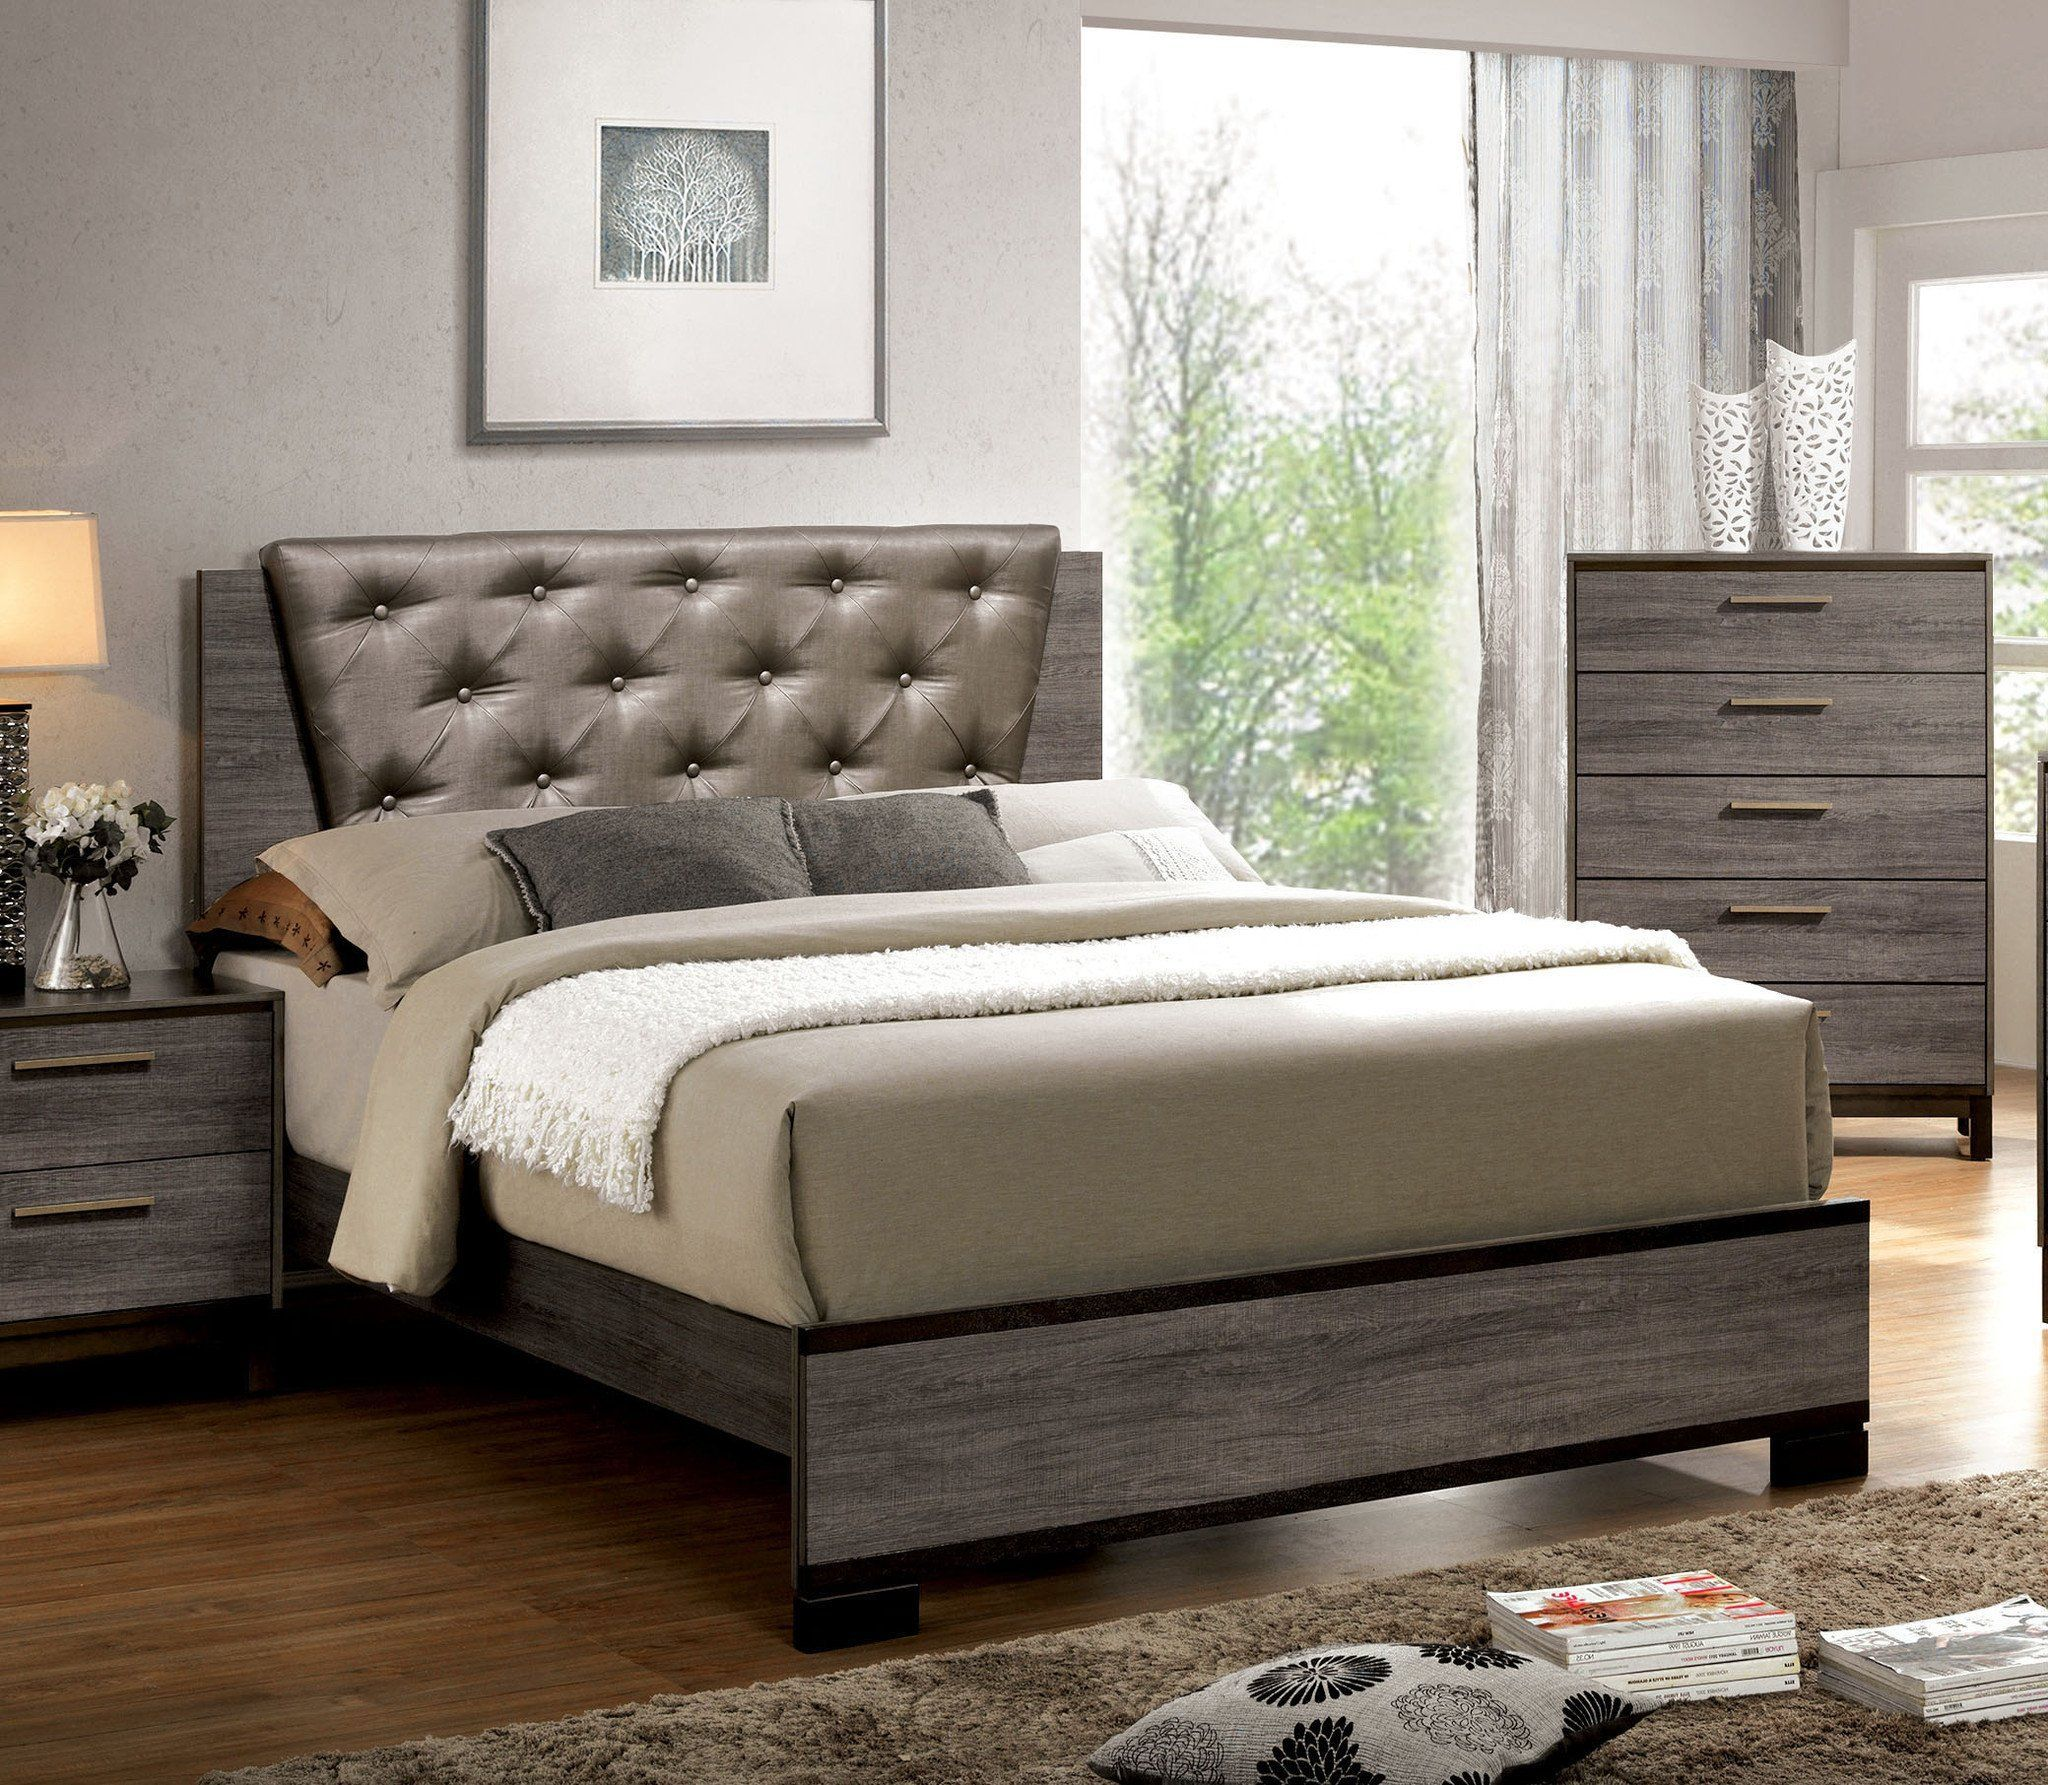 Jurado contemporary leatherette calking bed in antique grey king